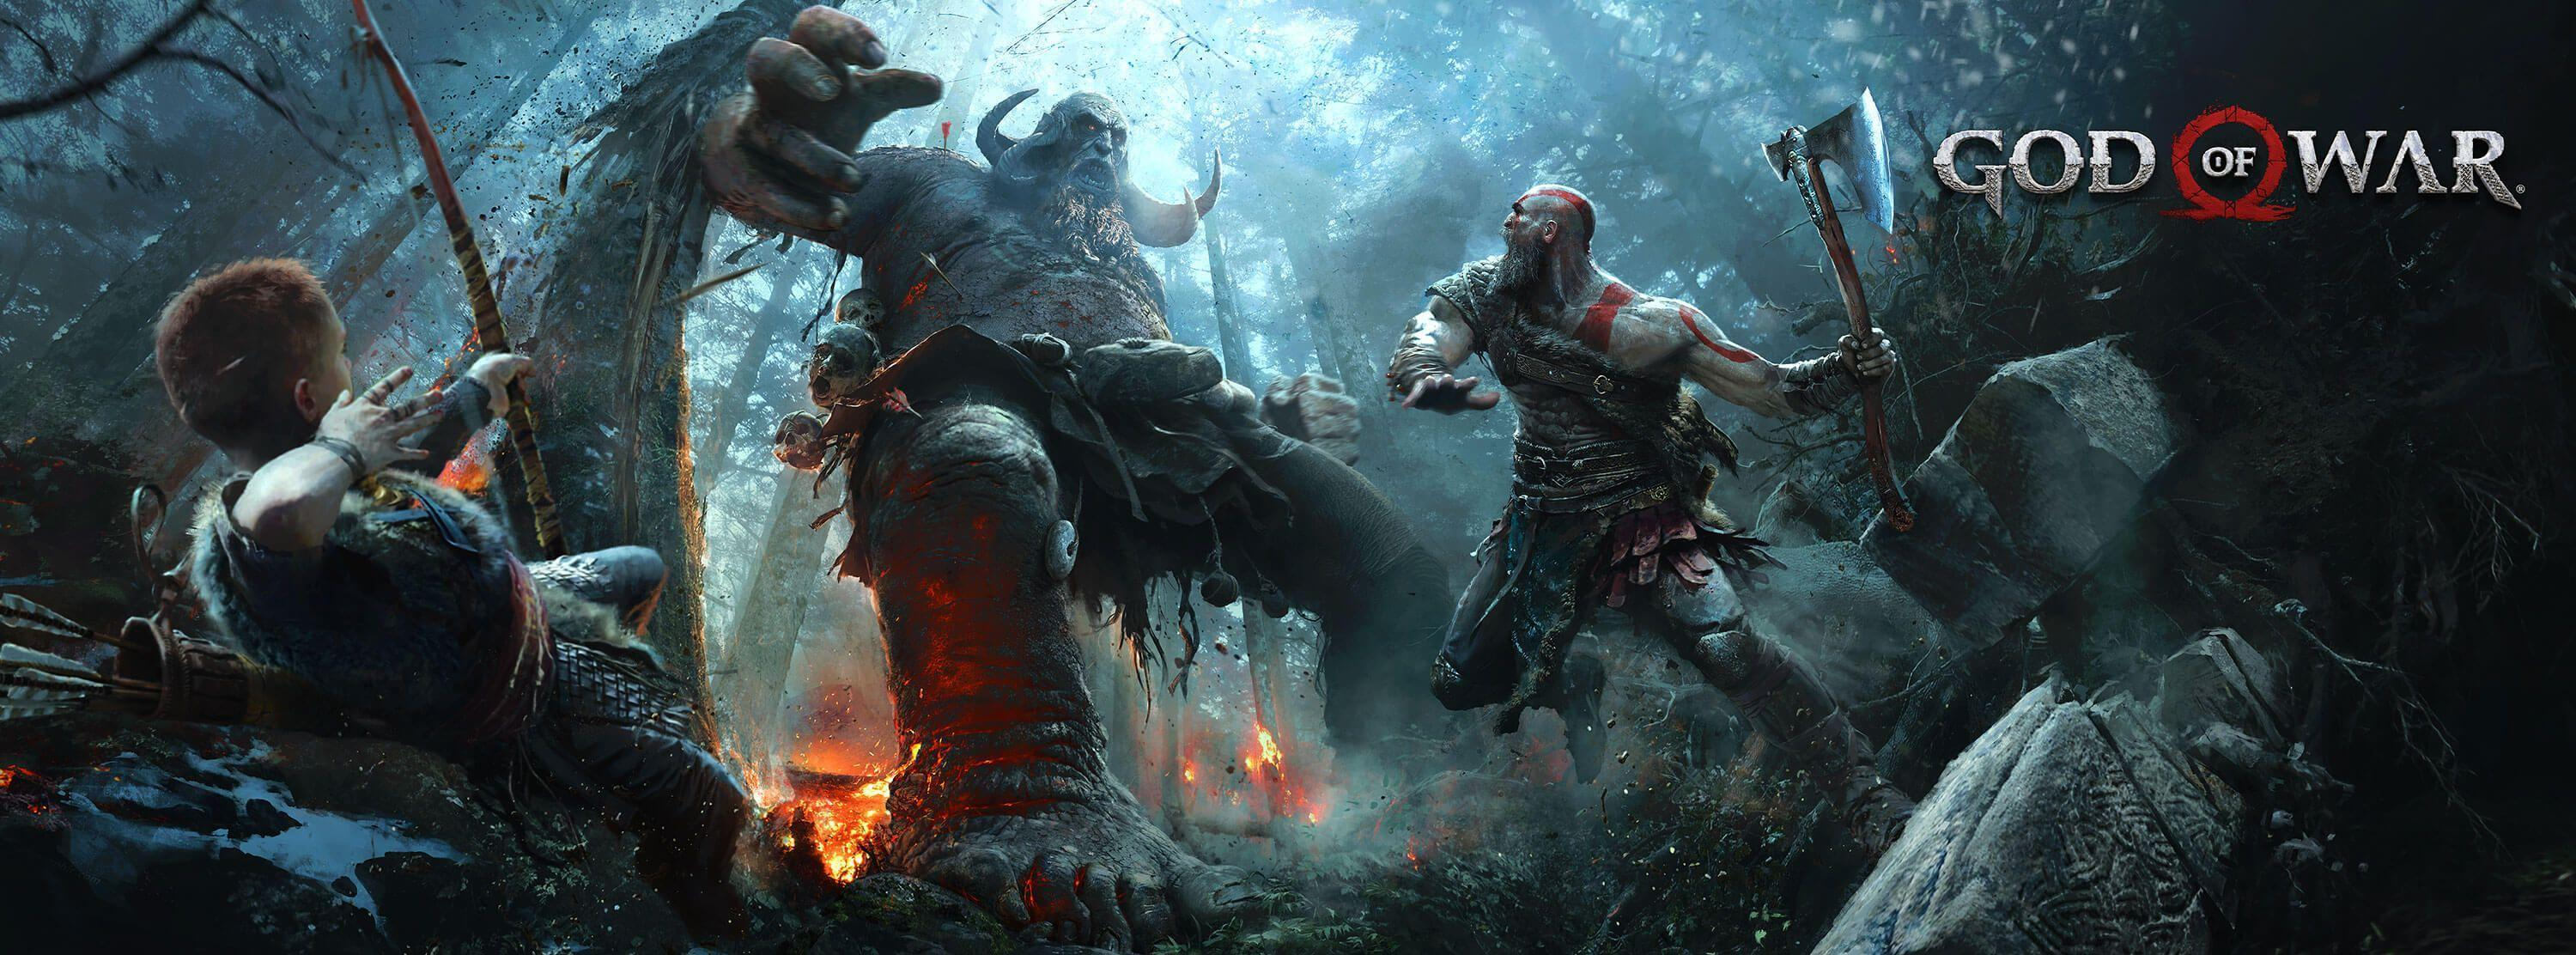 God of War 4 Wallpapers - Top Free God of War 4 Backgrounds ...